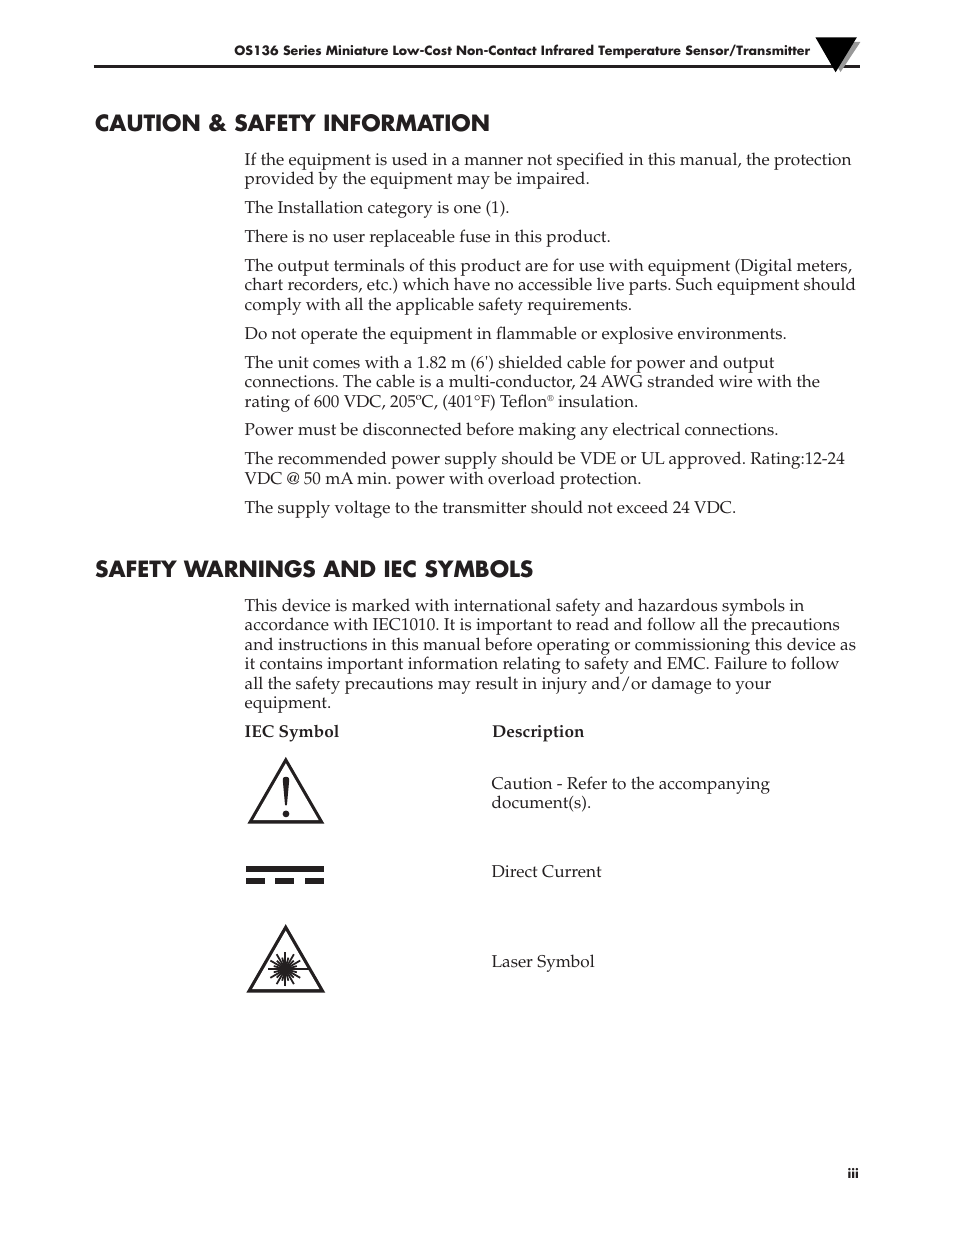 Caution Safety Information Safety Warnings And Iec Symbols